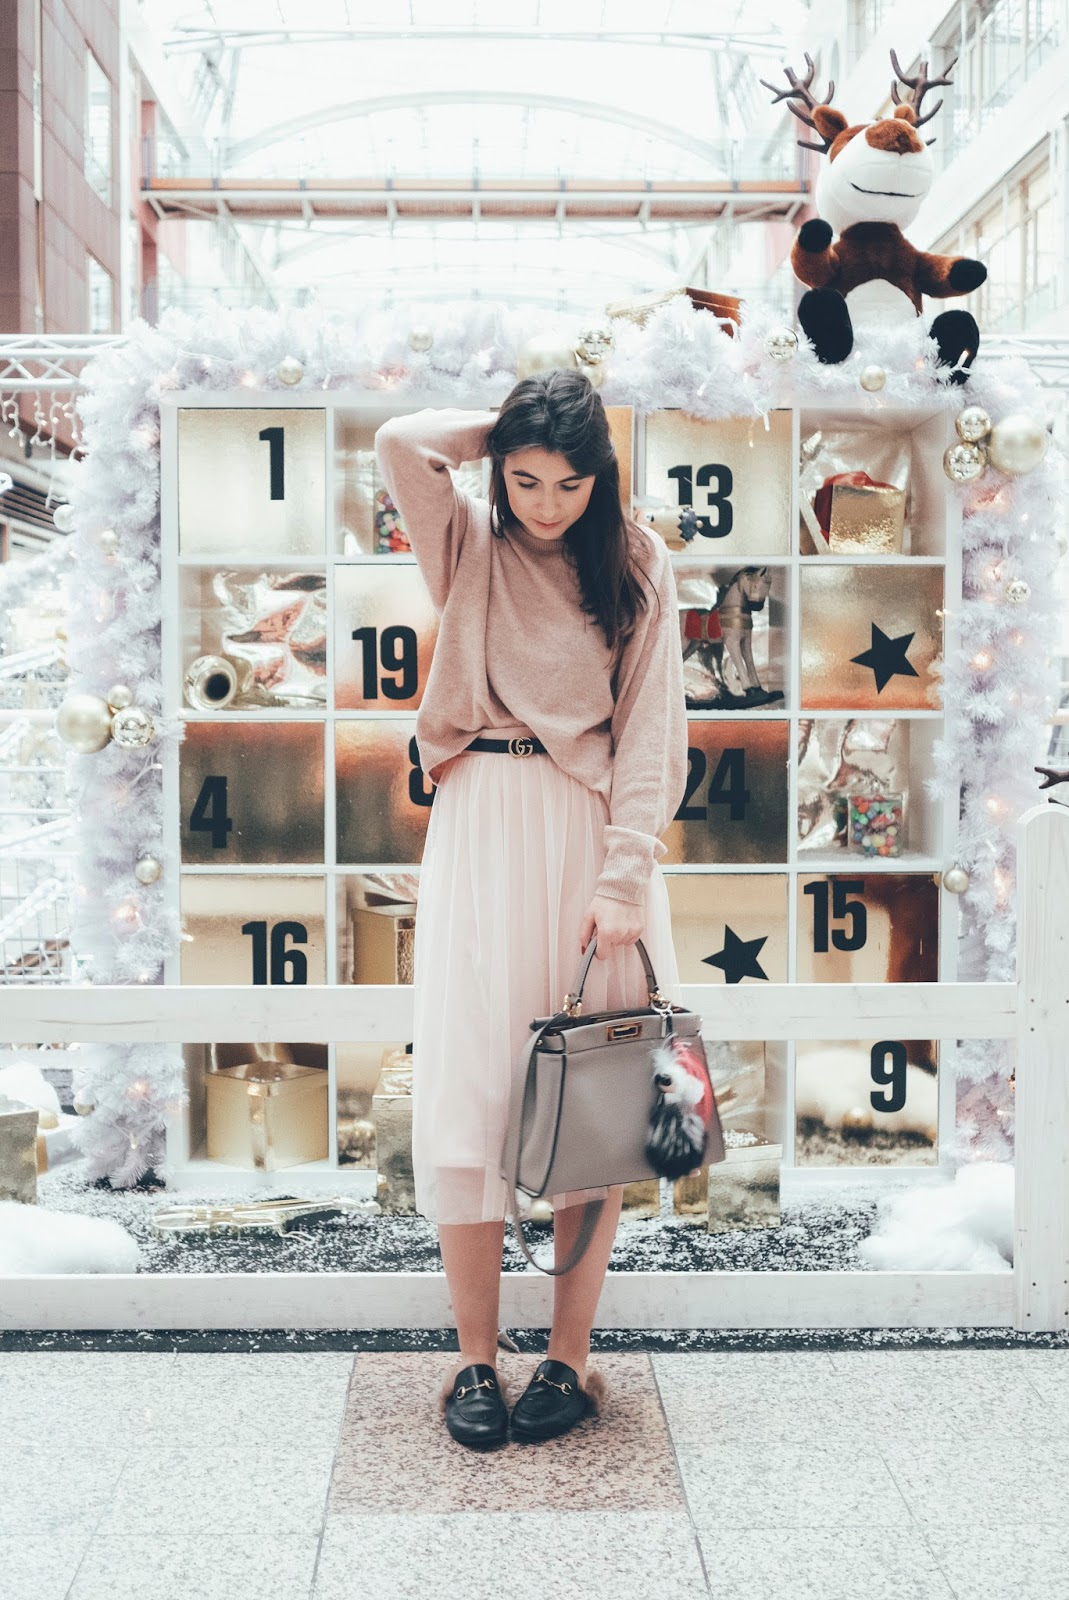 a64ca97dc47e Arifashionthread - Luxembourg Fashion and Lifestyle Blog  2016